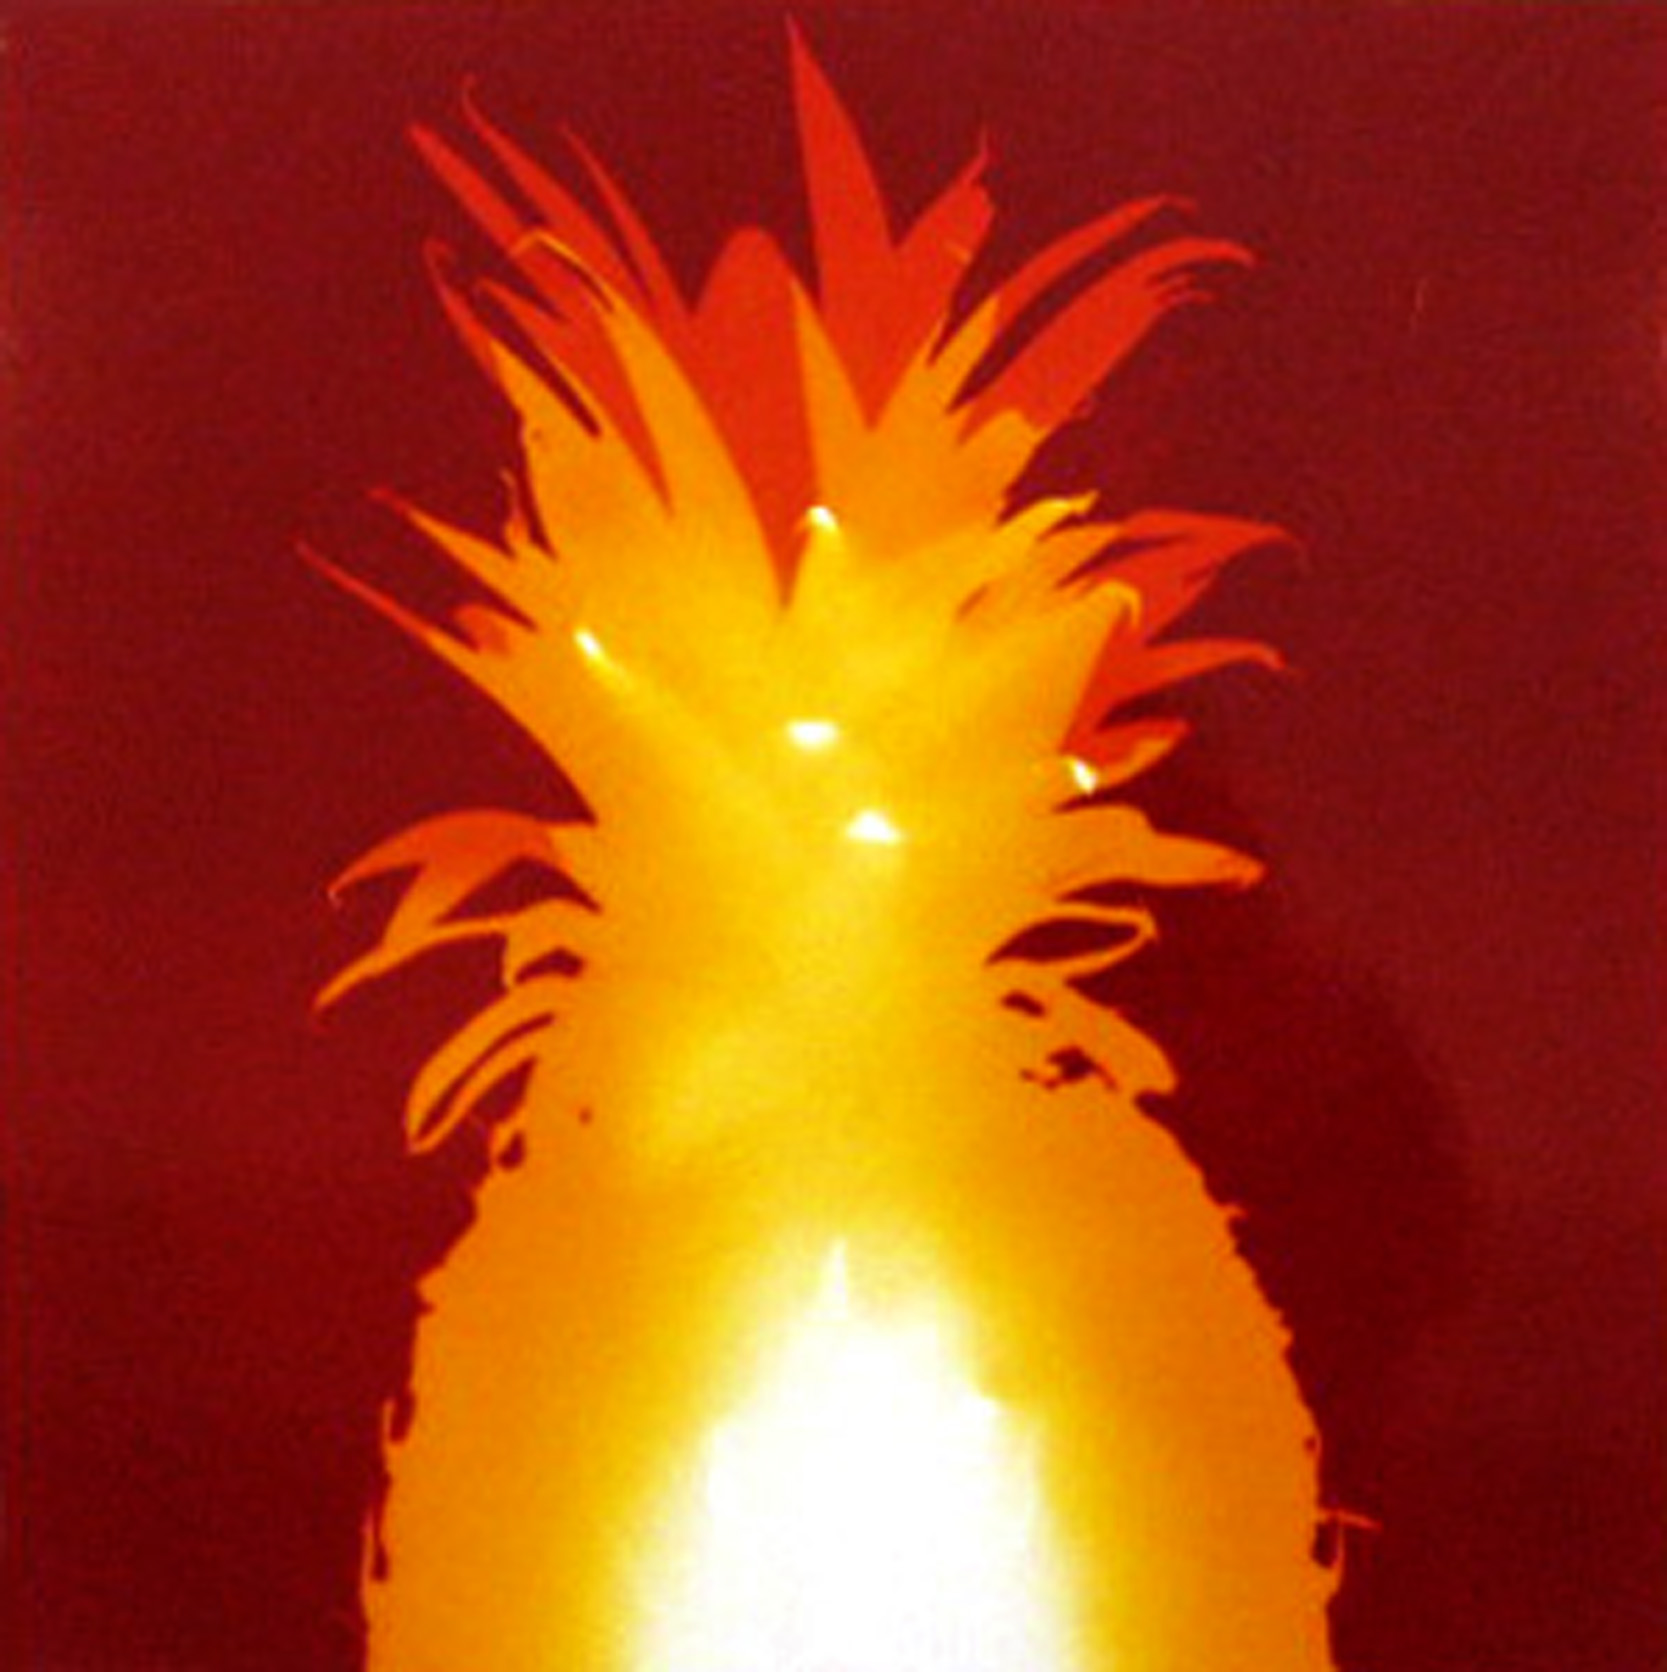 van Blerk, %22Pineapple%22, 2006, Heliogram, 8.75x8.75%22 copy.jpg